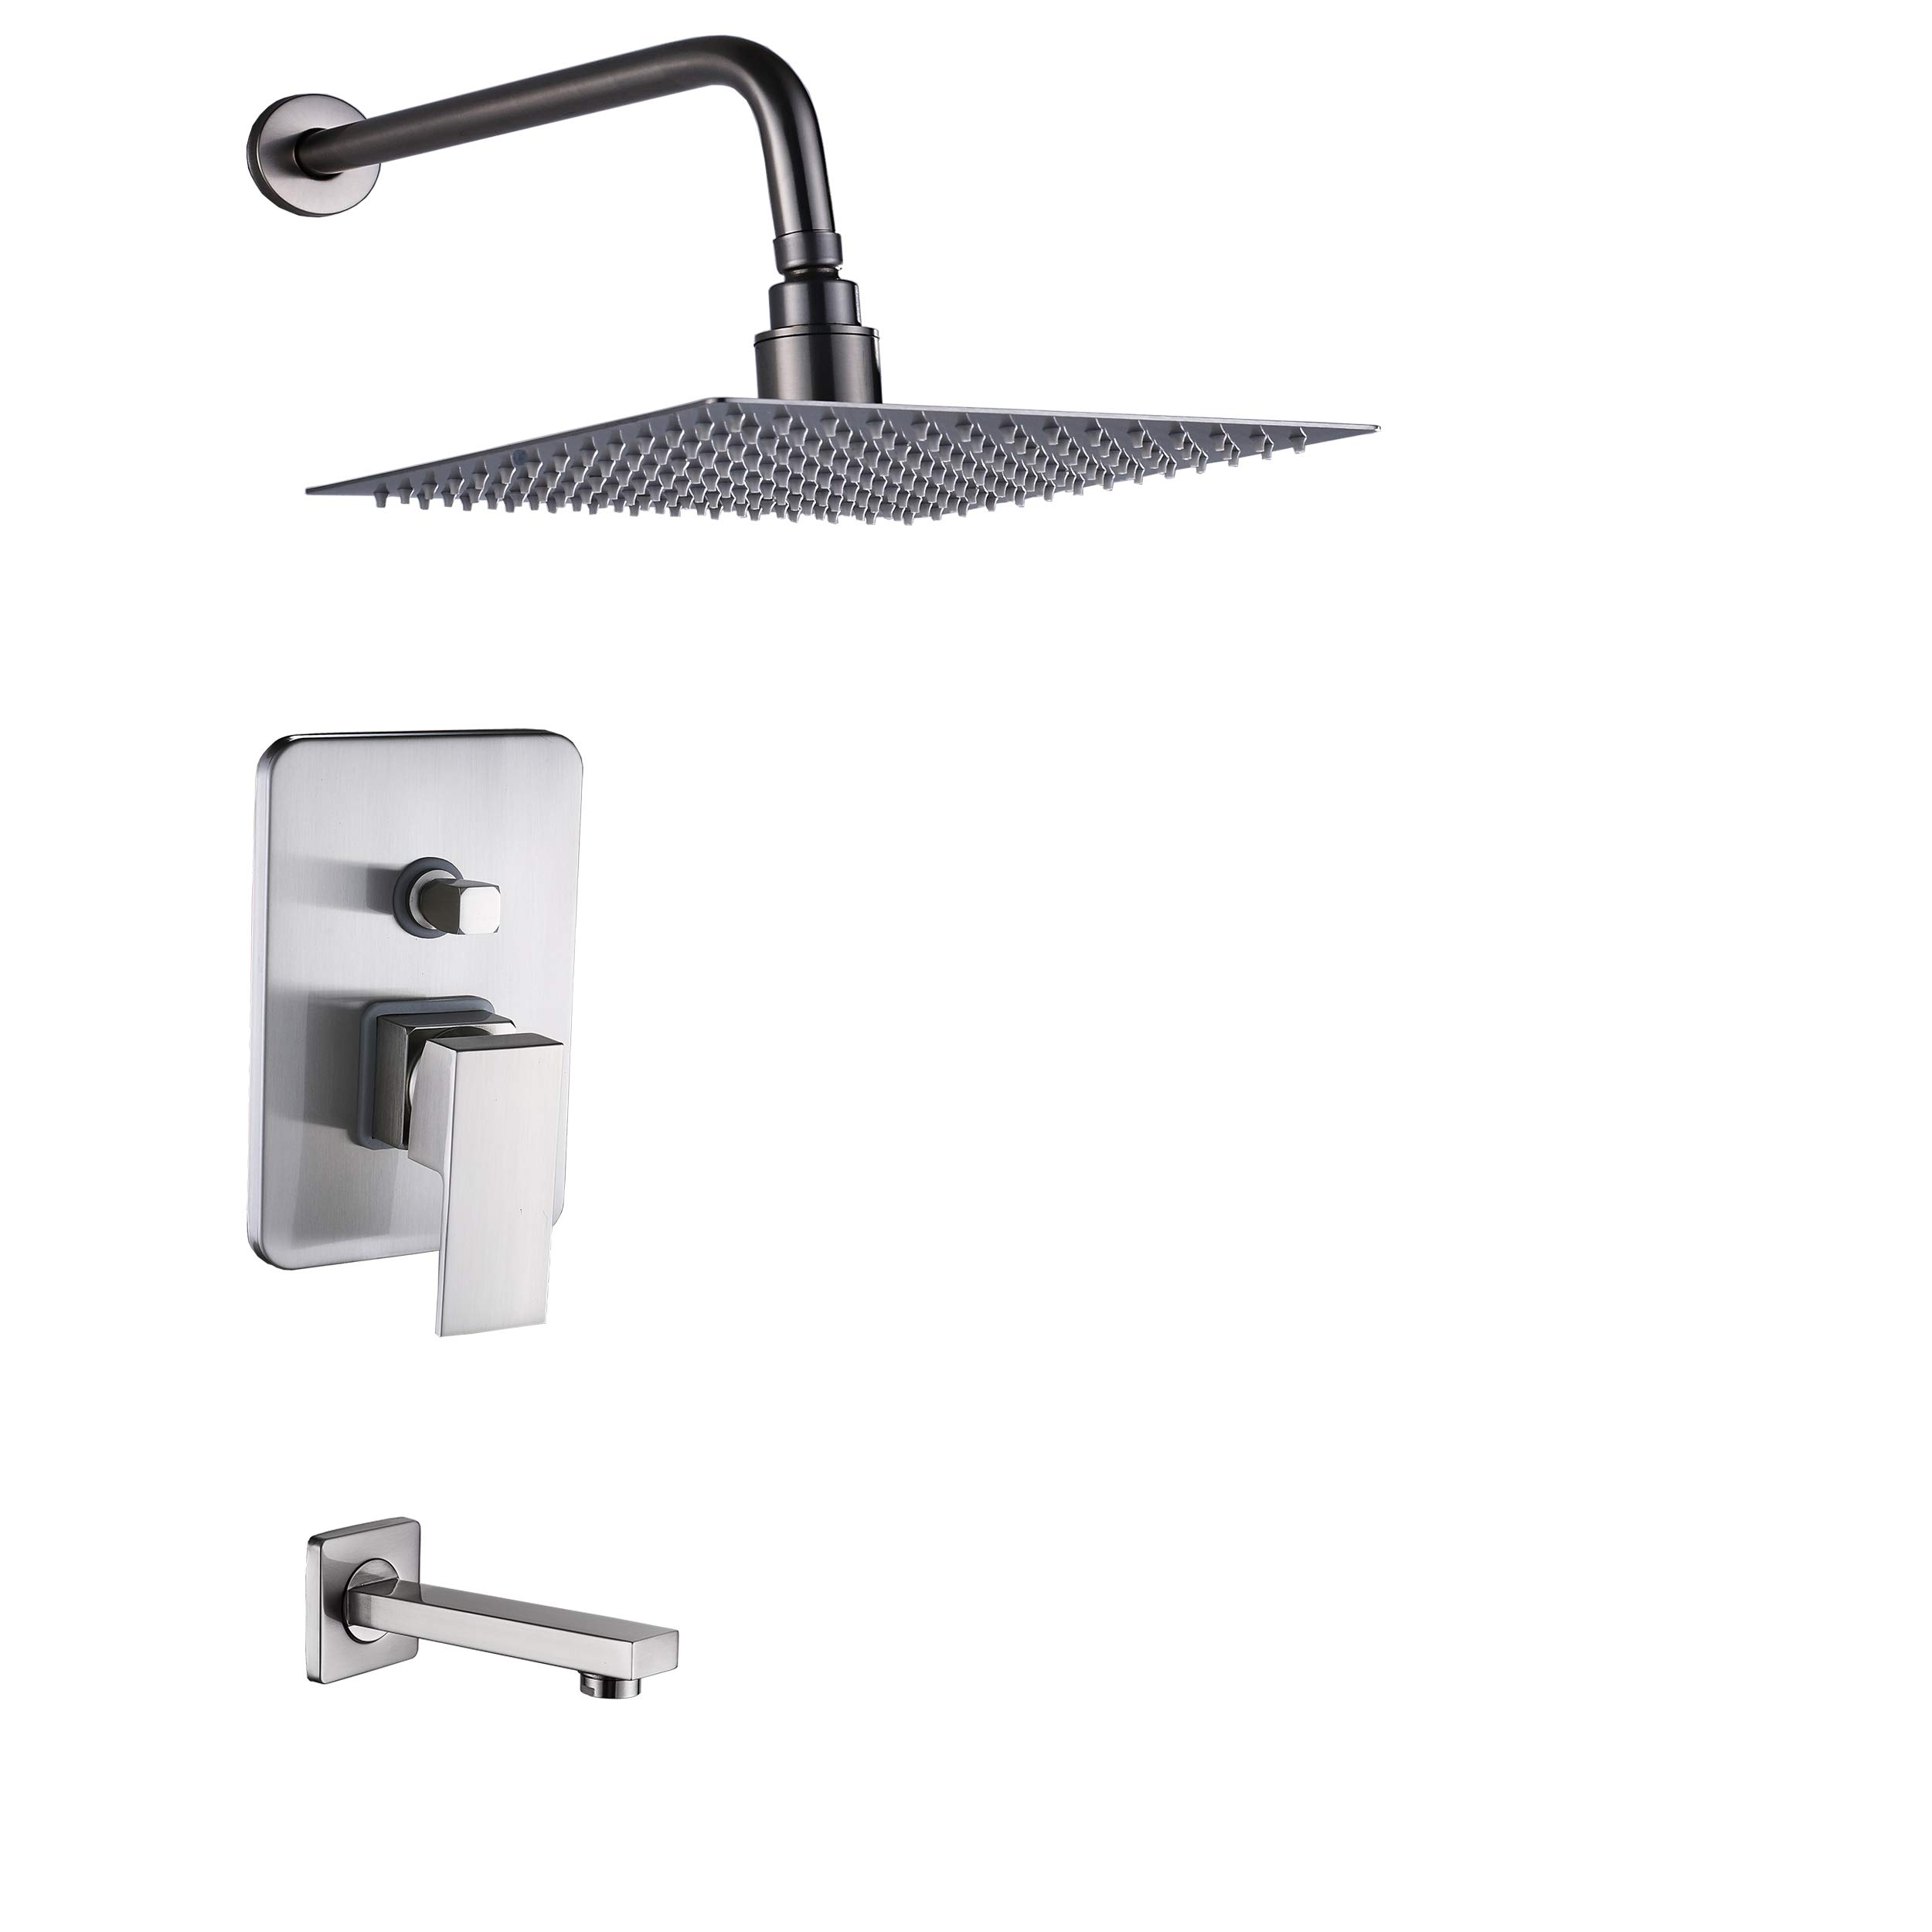 Rozin Brushed Nickel 2-way Mixer 10'' Square Rainfall Showerhead with Tub Spout Wall Mounted